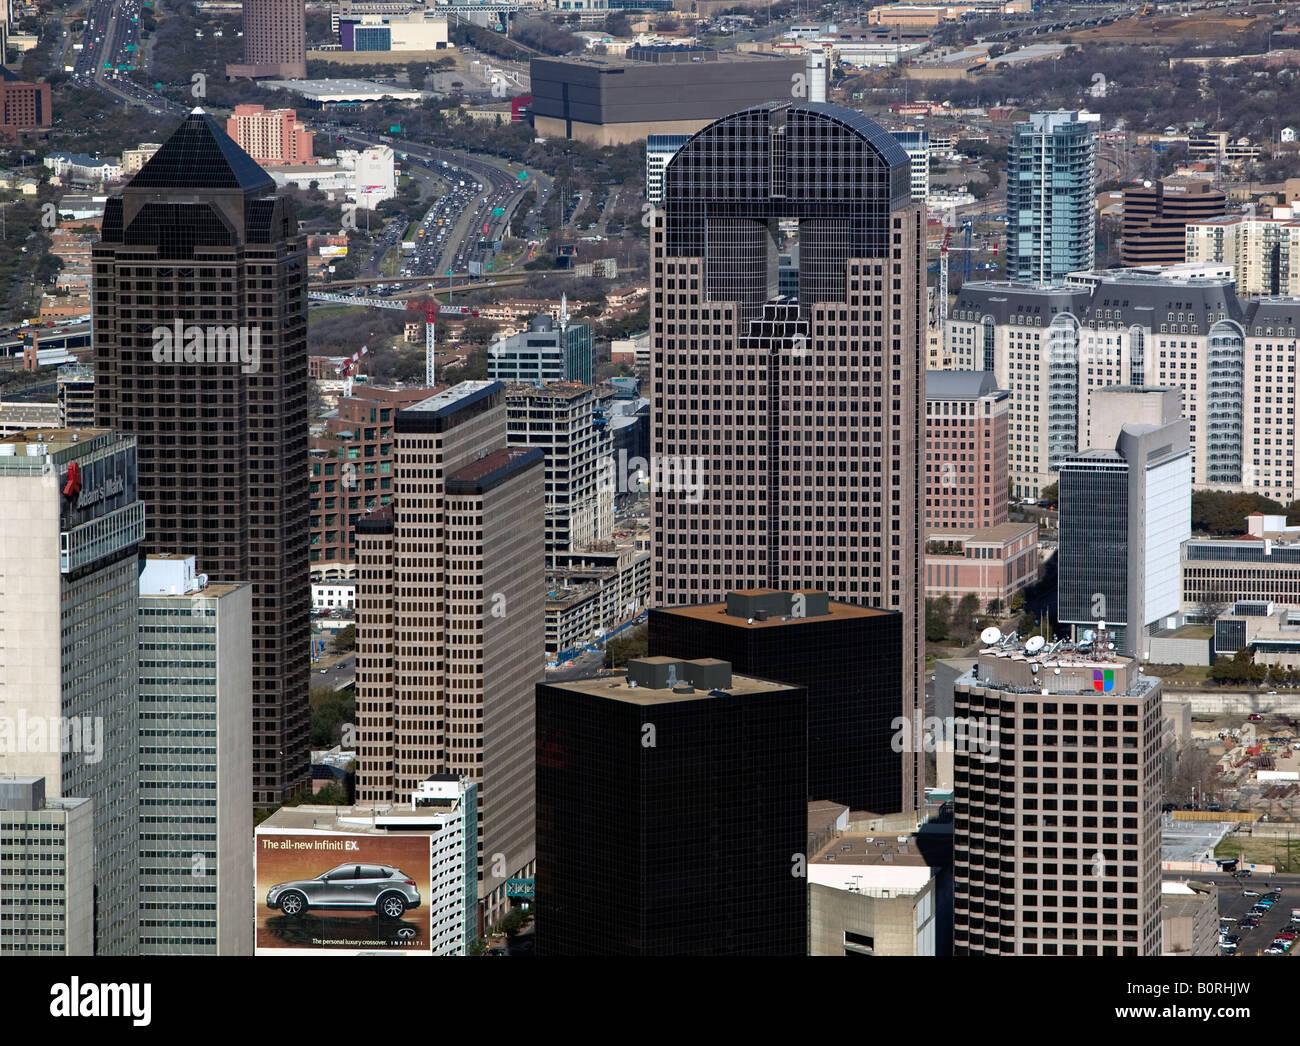 aerial above Dallas Texas with JP Morgan Chase tower center and adjacent buildings - Stock Image